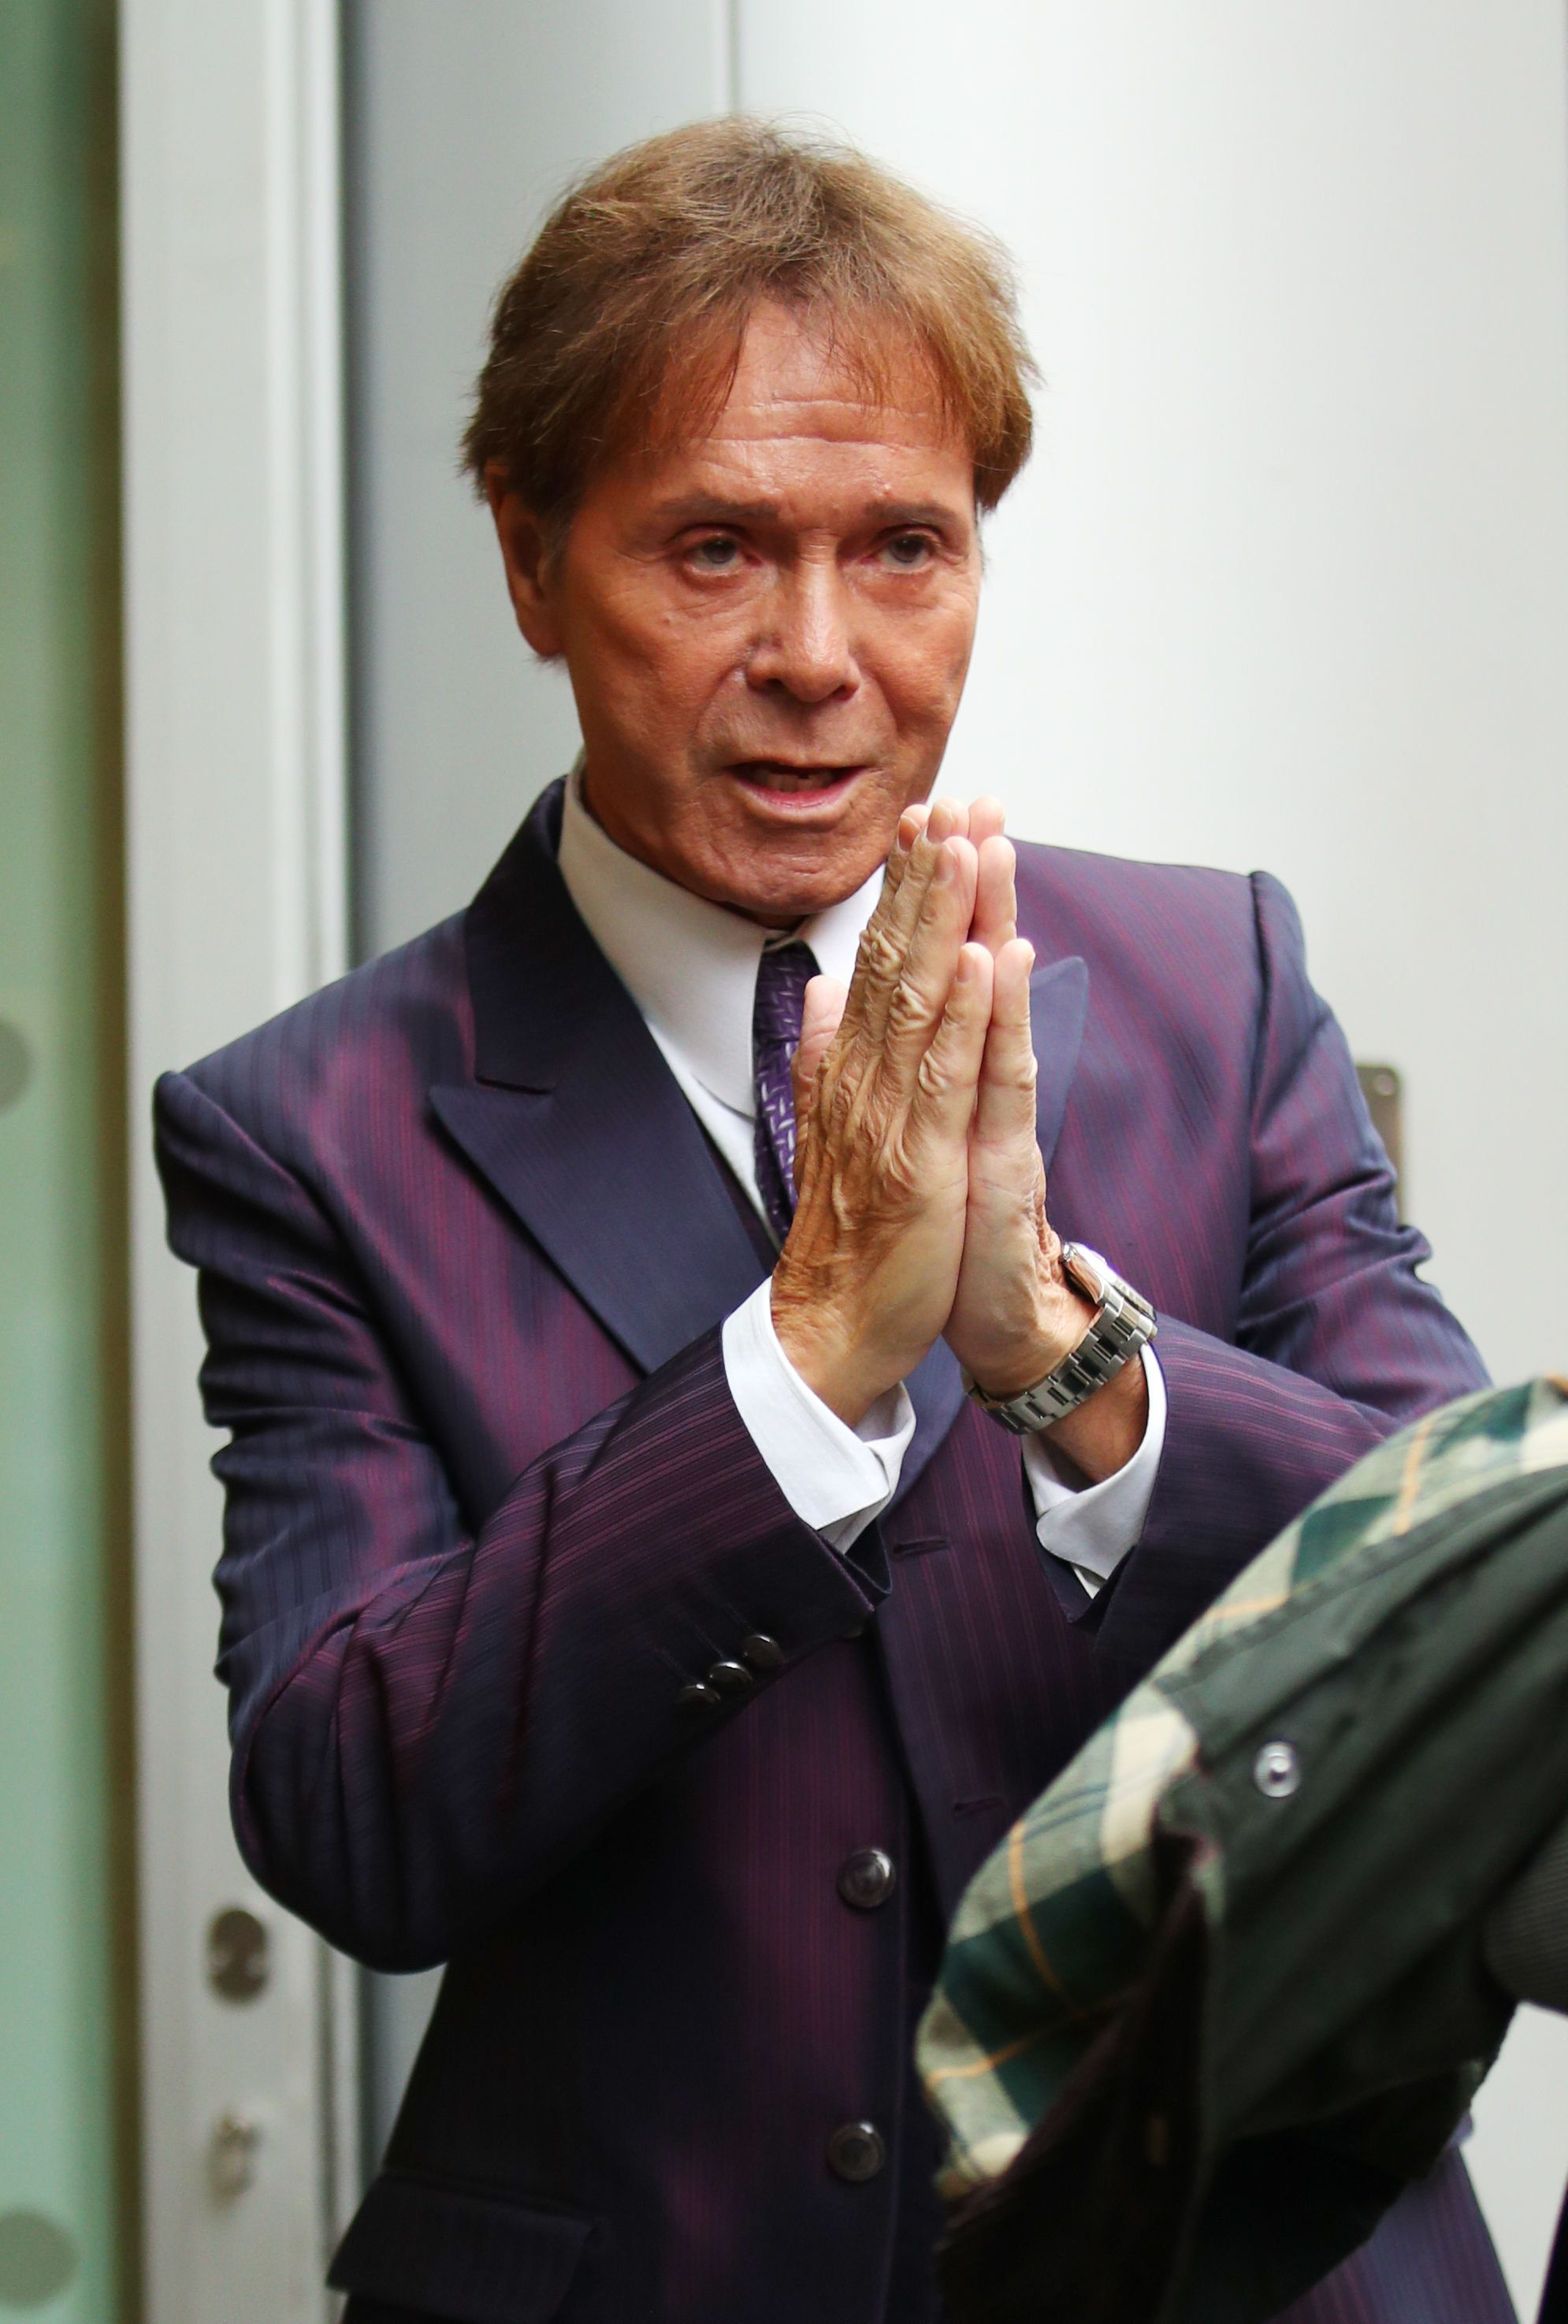 Sir Cliff Richard arrives at the Rolls Building in